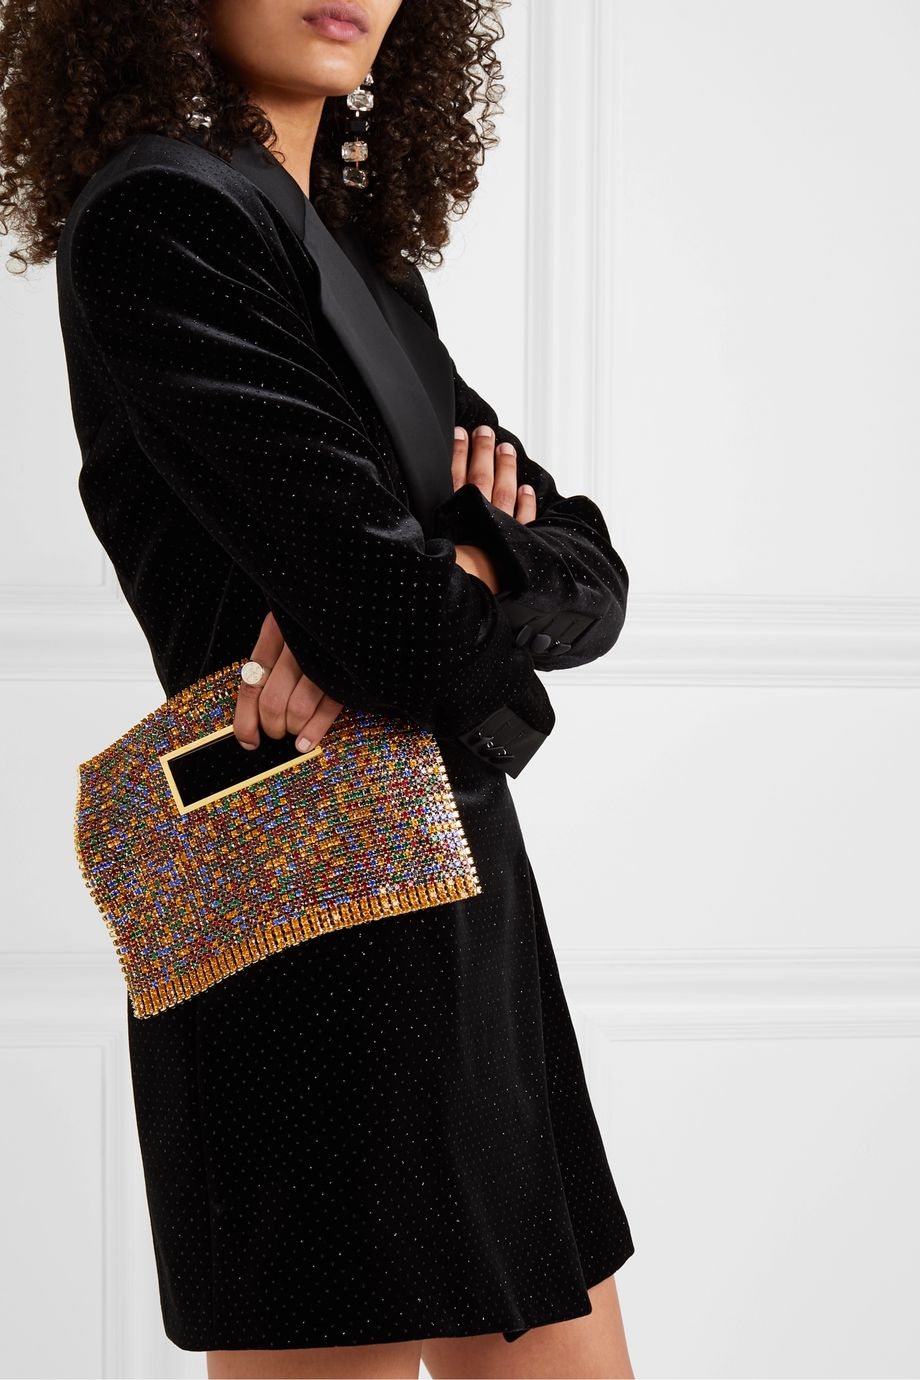 Rosantica Iside crystal-embellished chainmail tote